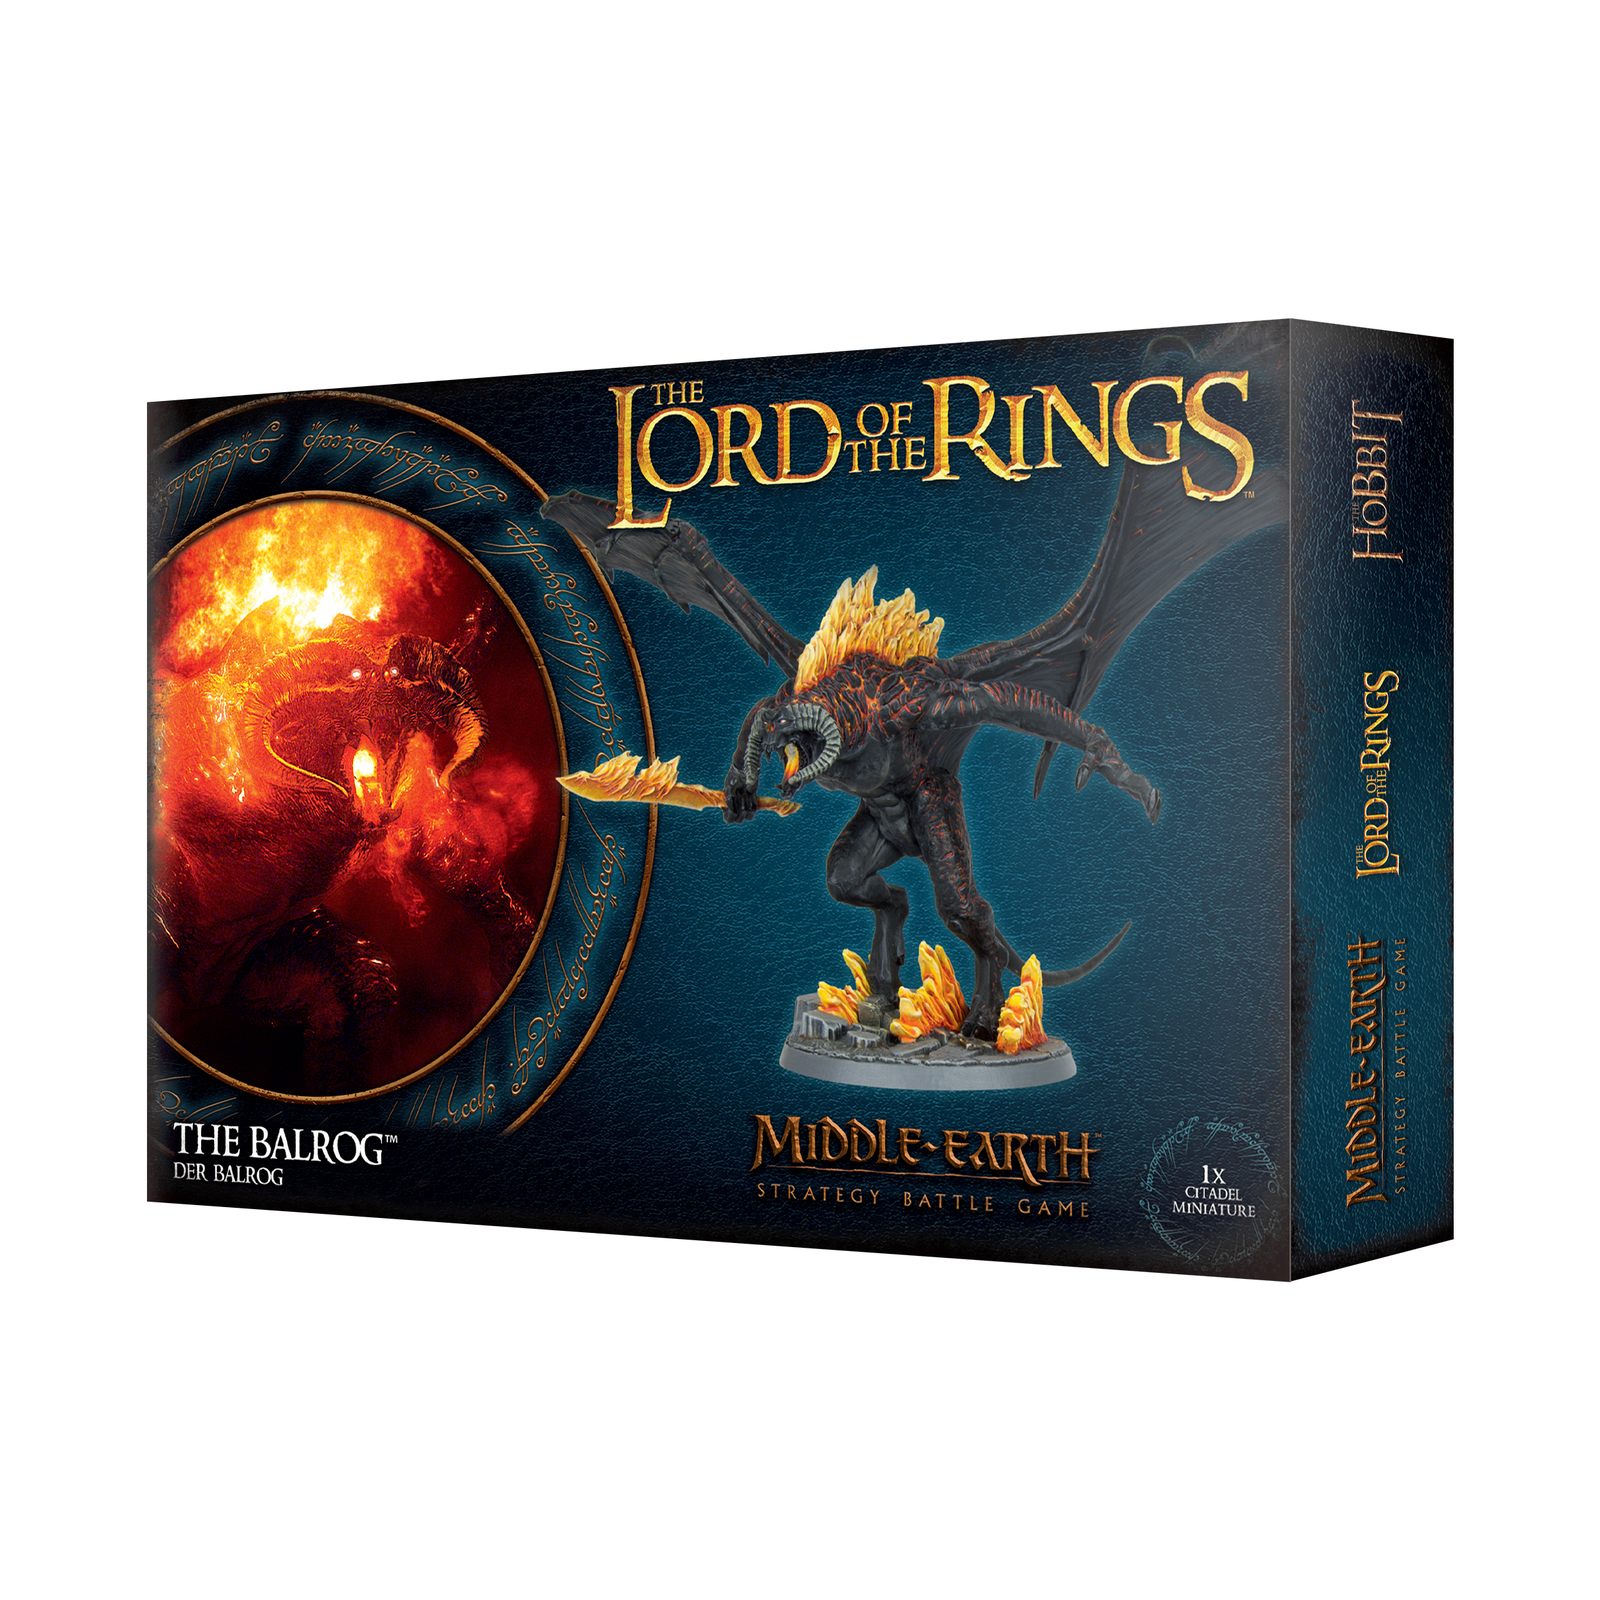 Lord of the Rings: The Balrog image